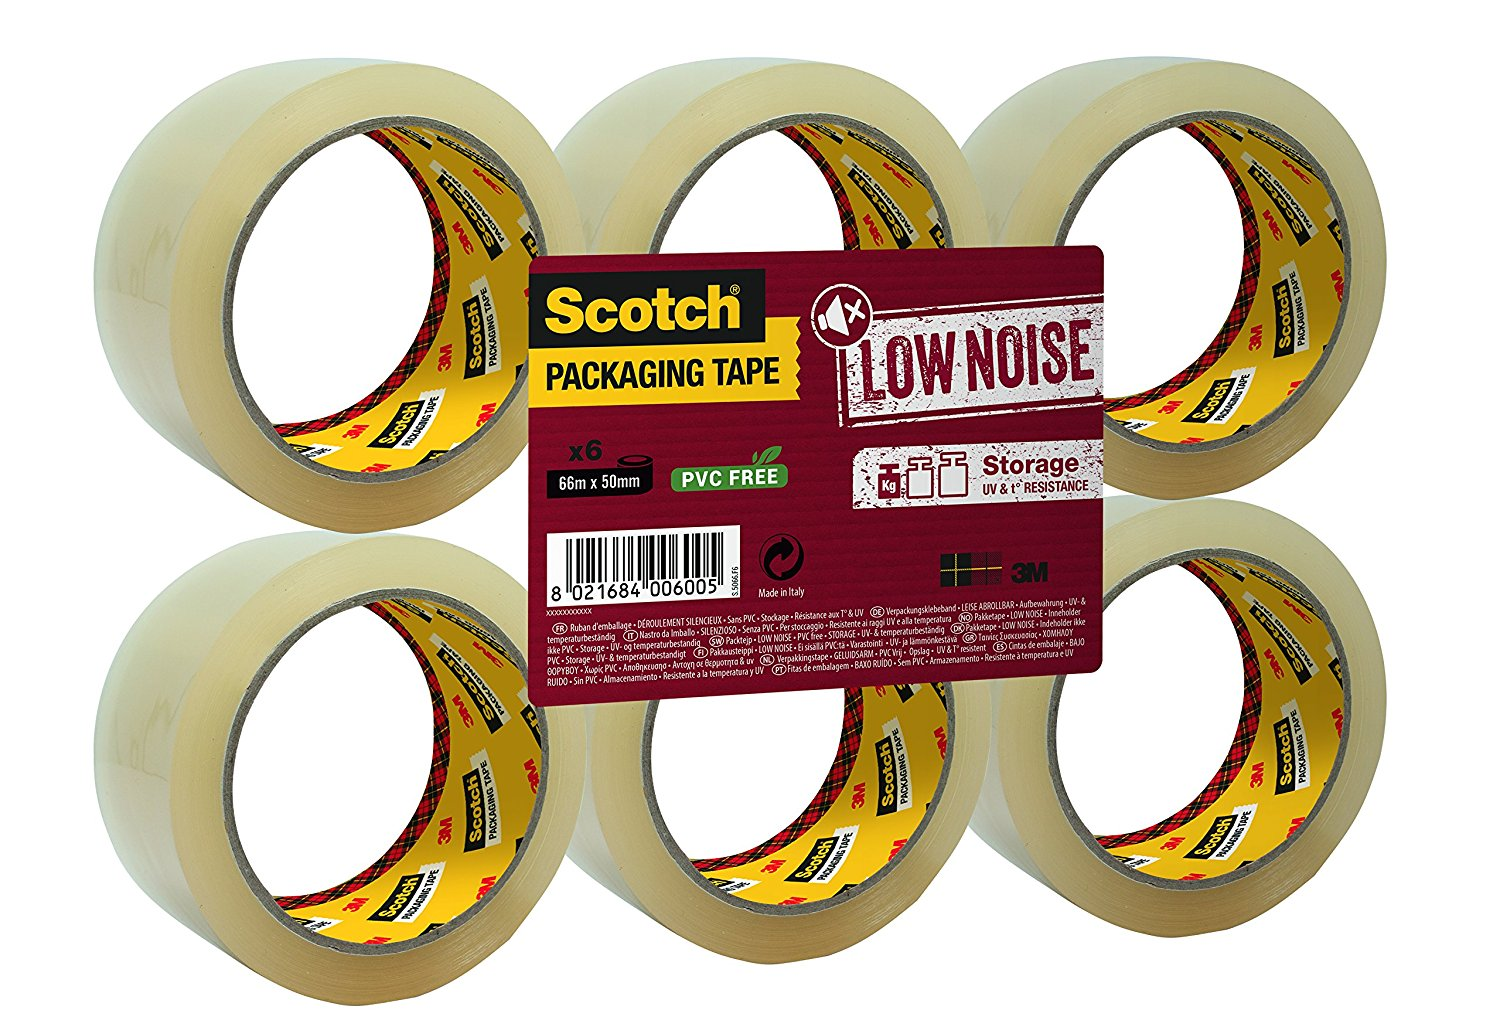 Scotch Storage Packing Tape.